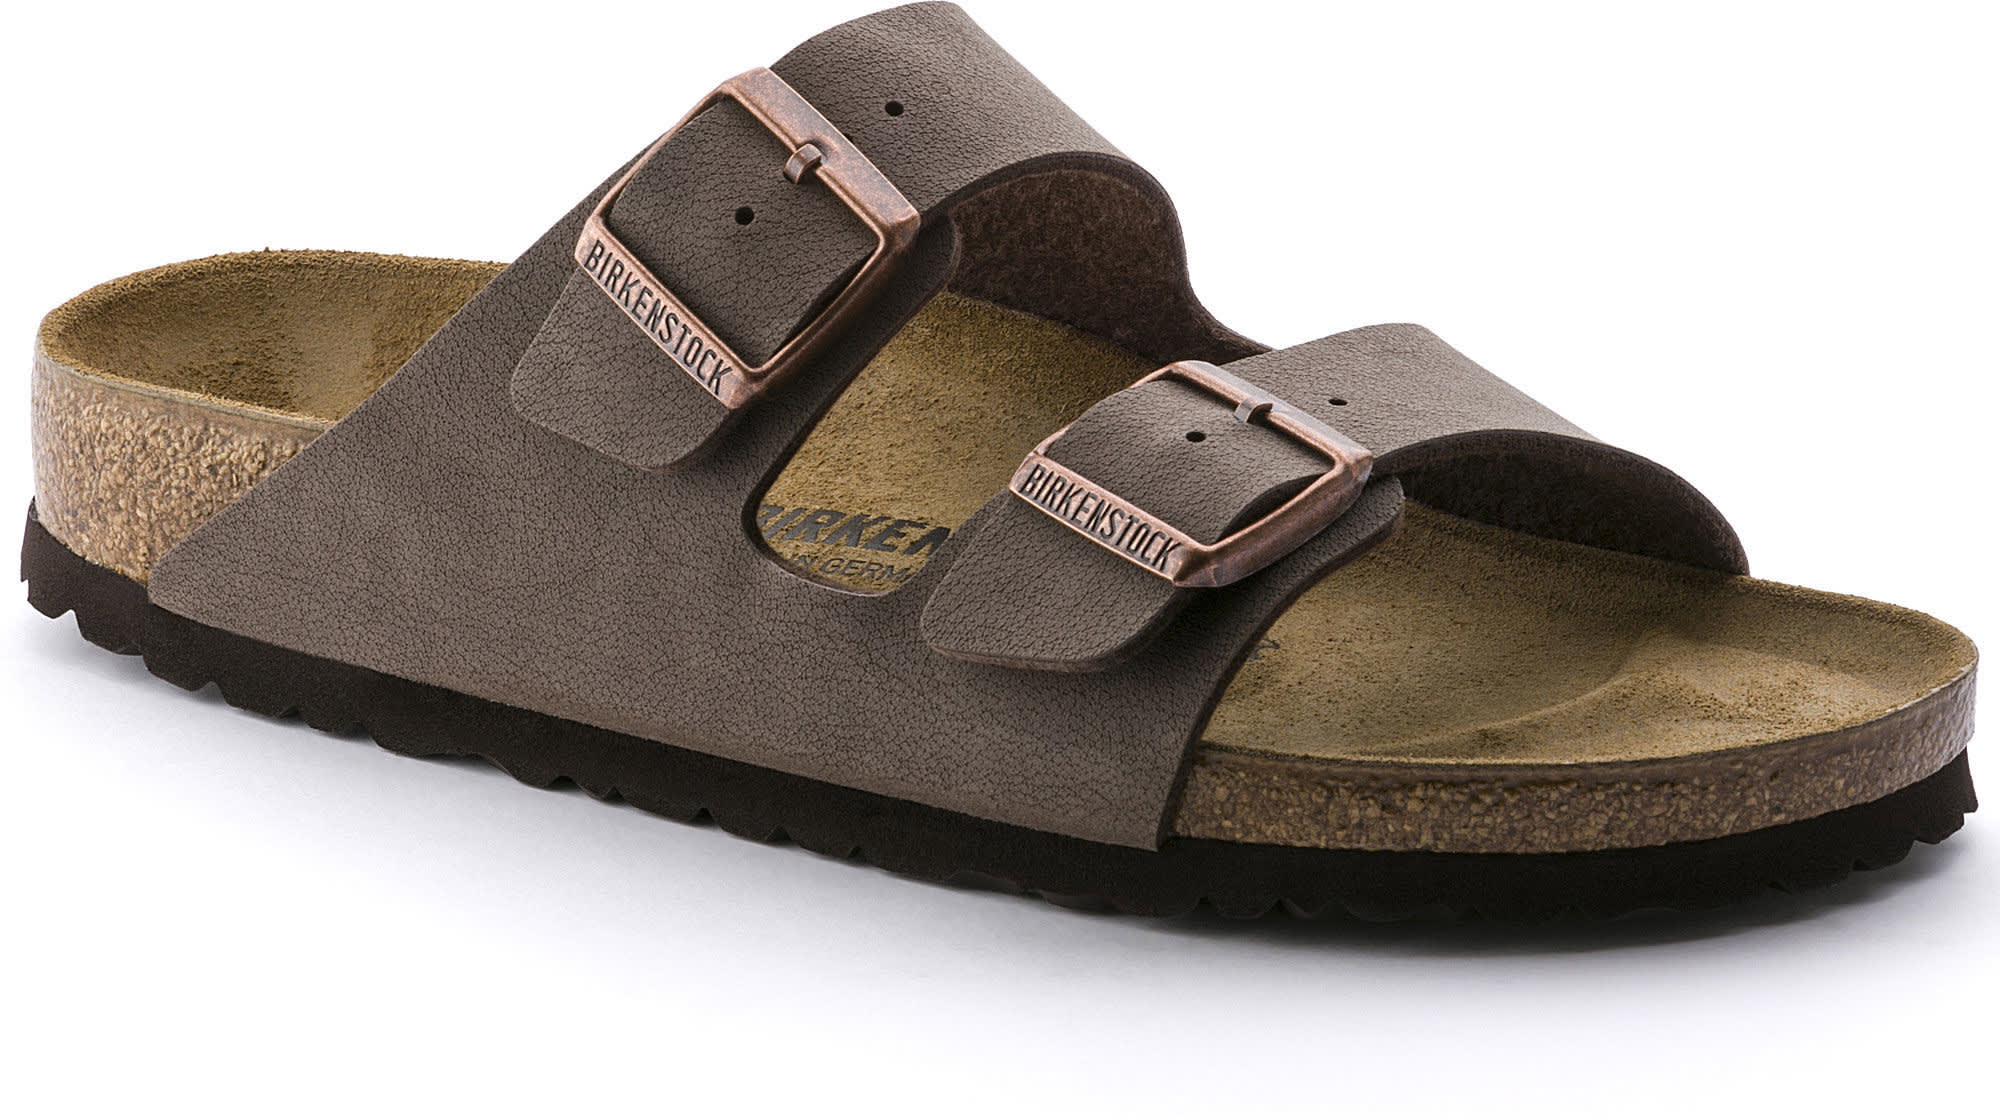 f3b632cfba67 Free shipping on all birkenstock sandals at moosejaw. You can buy a bottle  of cork-protectant on for around 5 bucks. Search for white sandals men  price ...